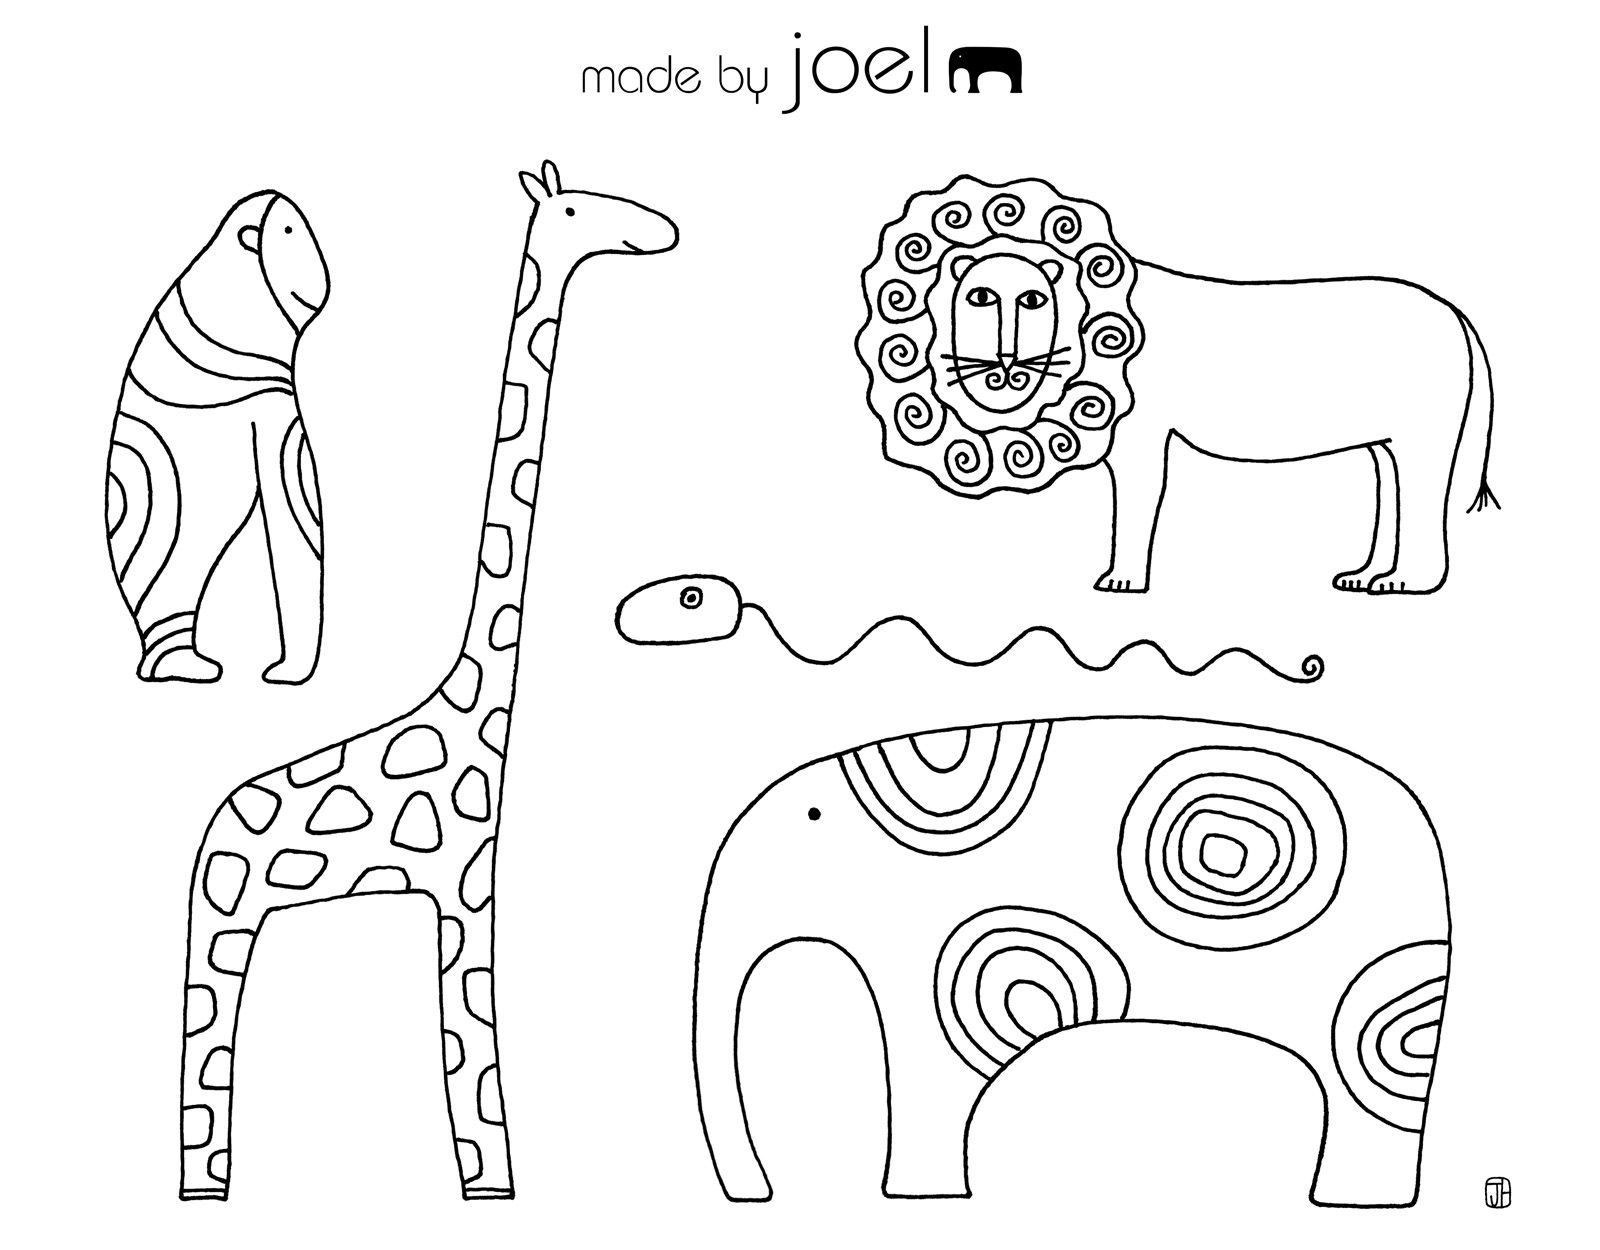 Free Coloring Sheets Made By Joel